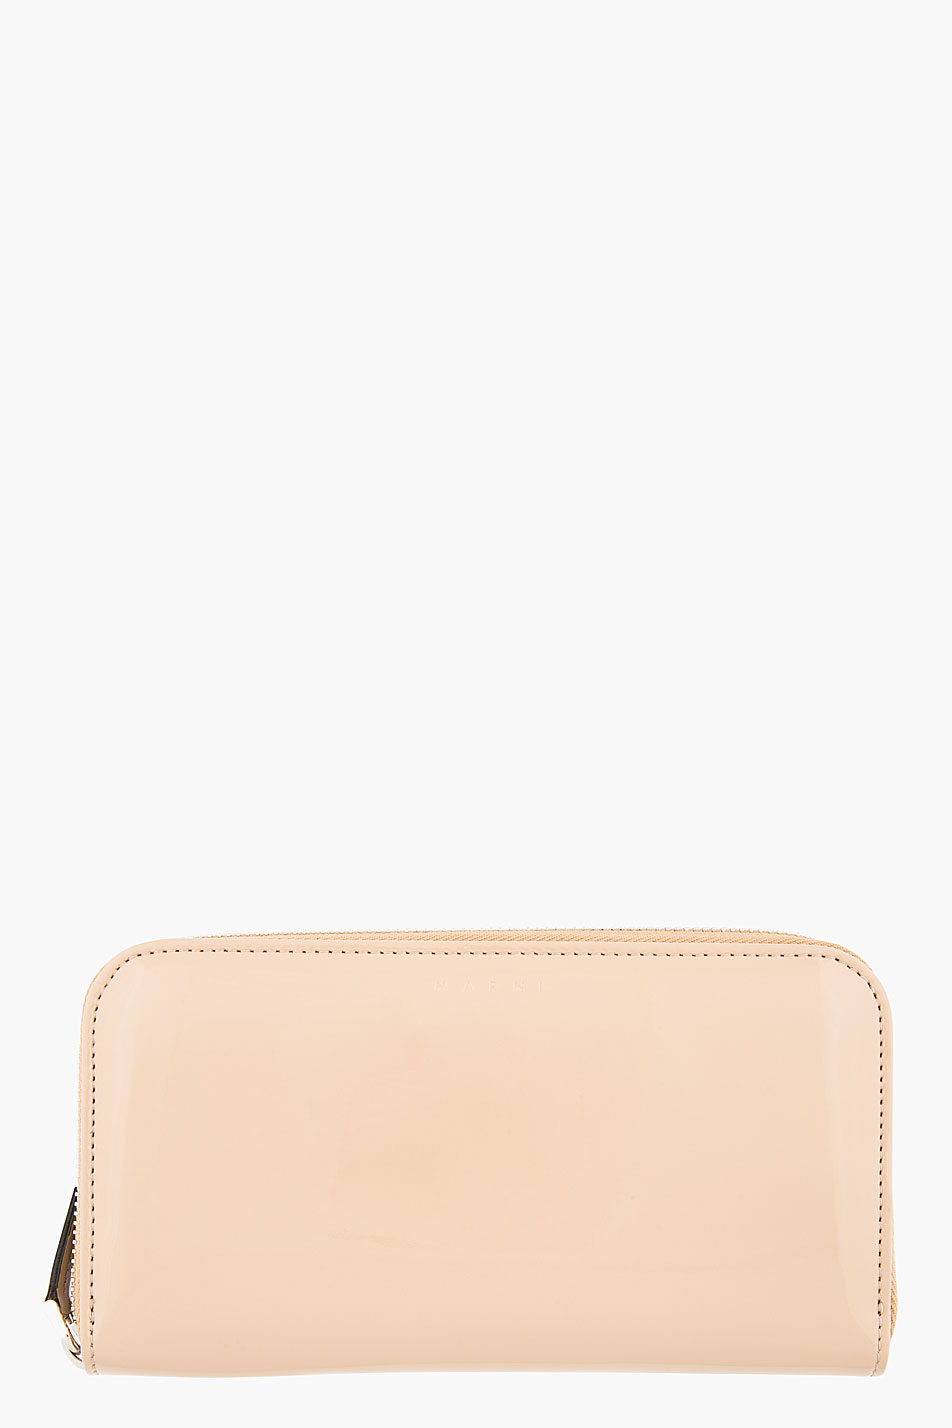 marni edition taupe patent leather minimalist continental wallet